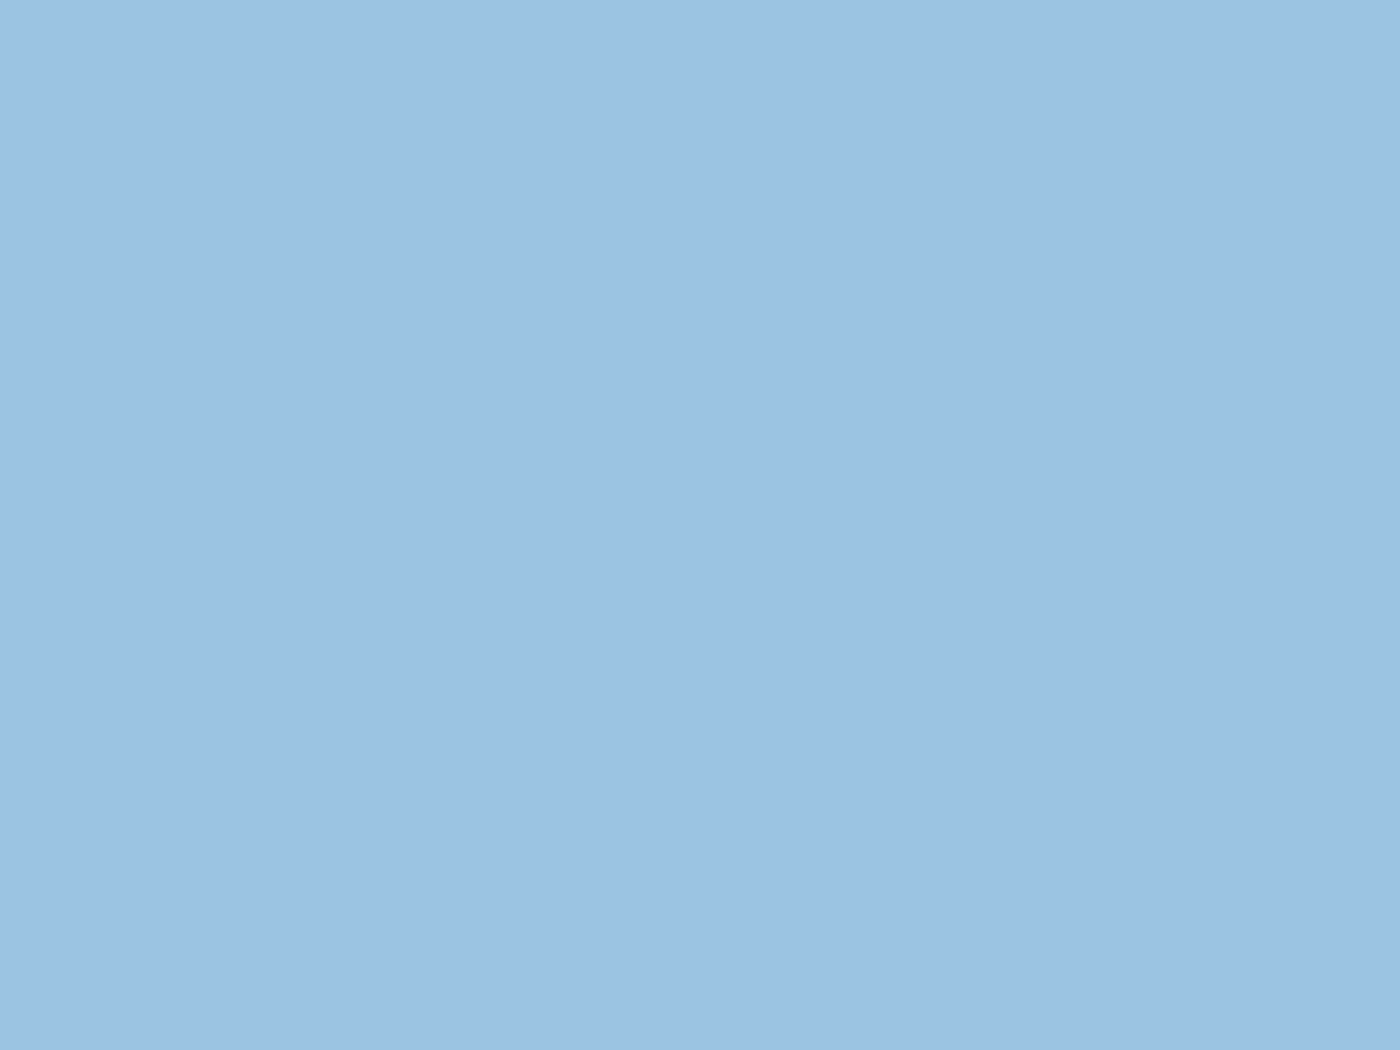 1400x1050 Pale Cerulean Solid Color Background